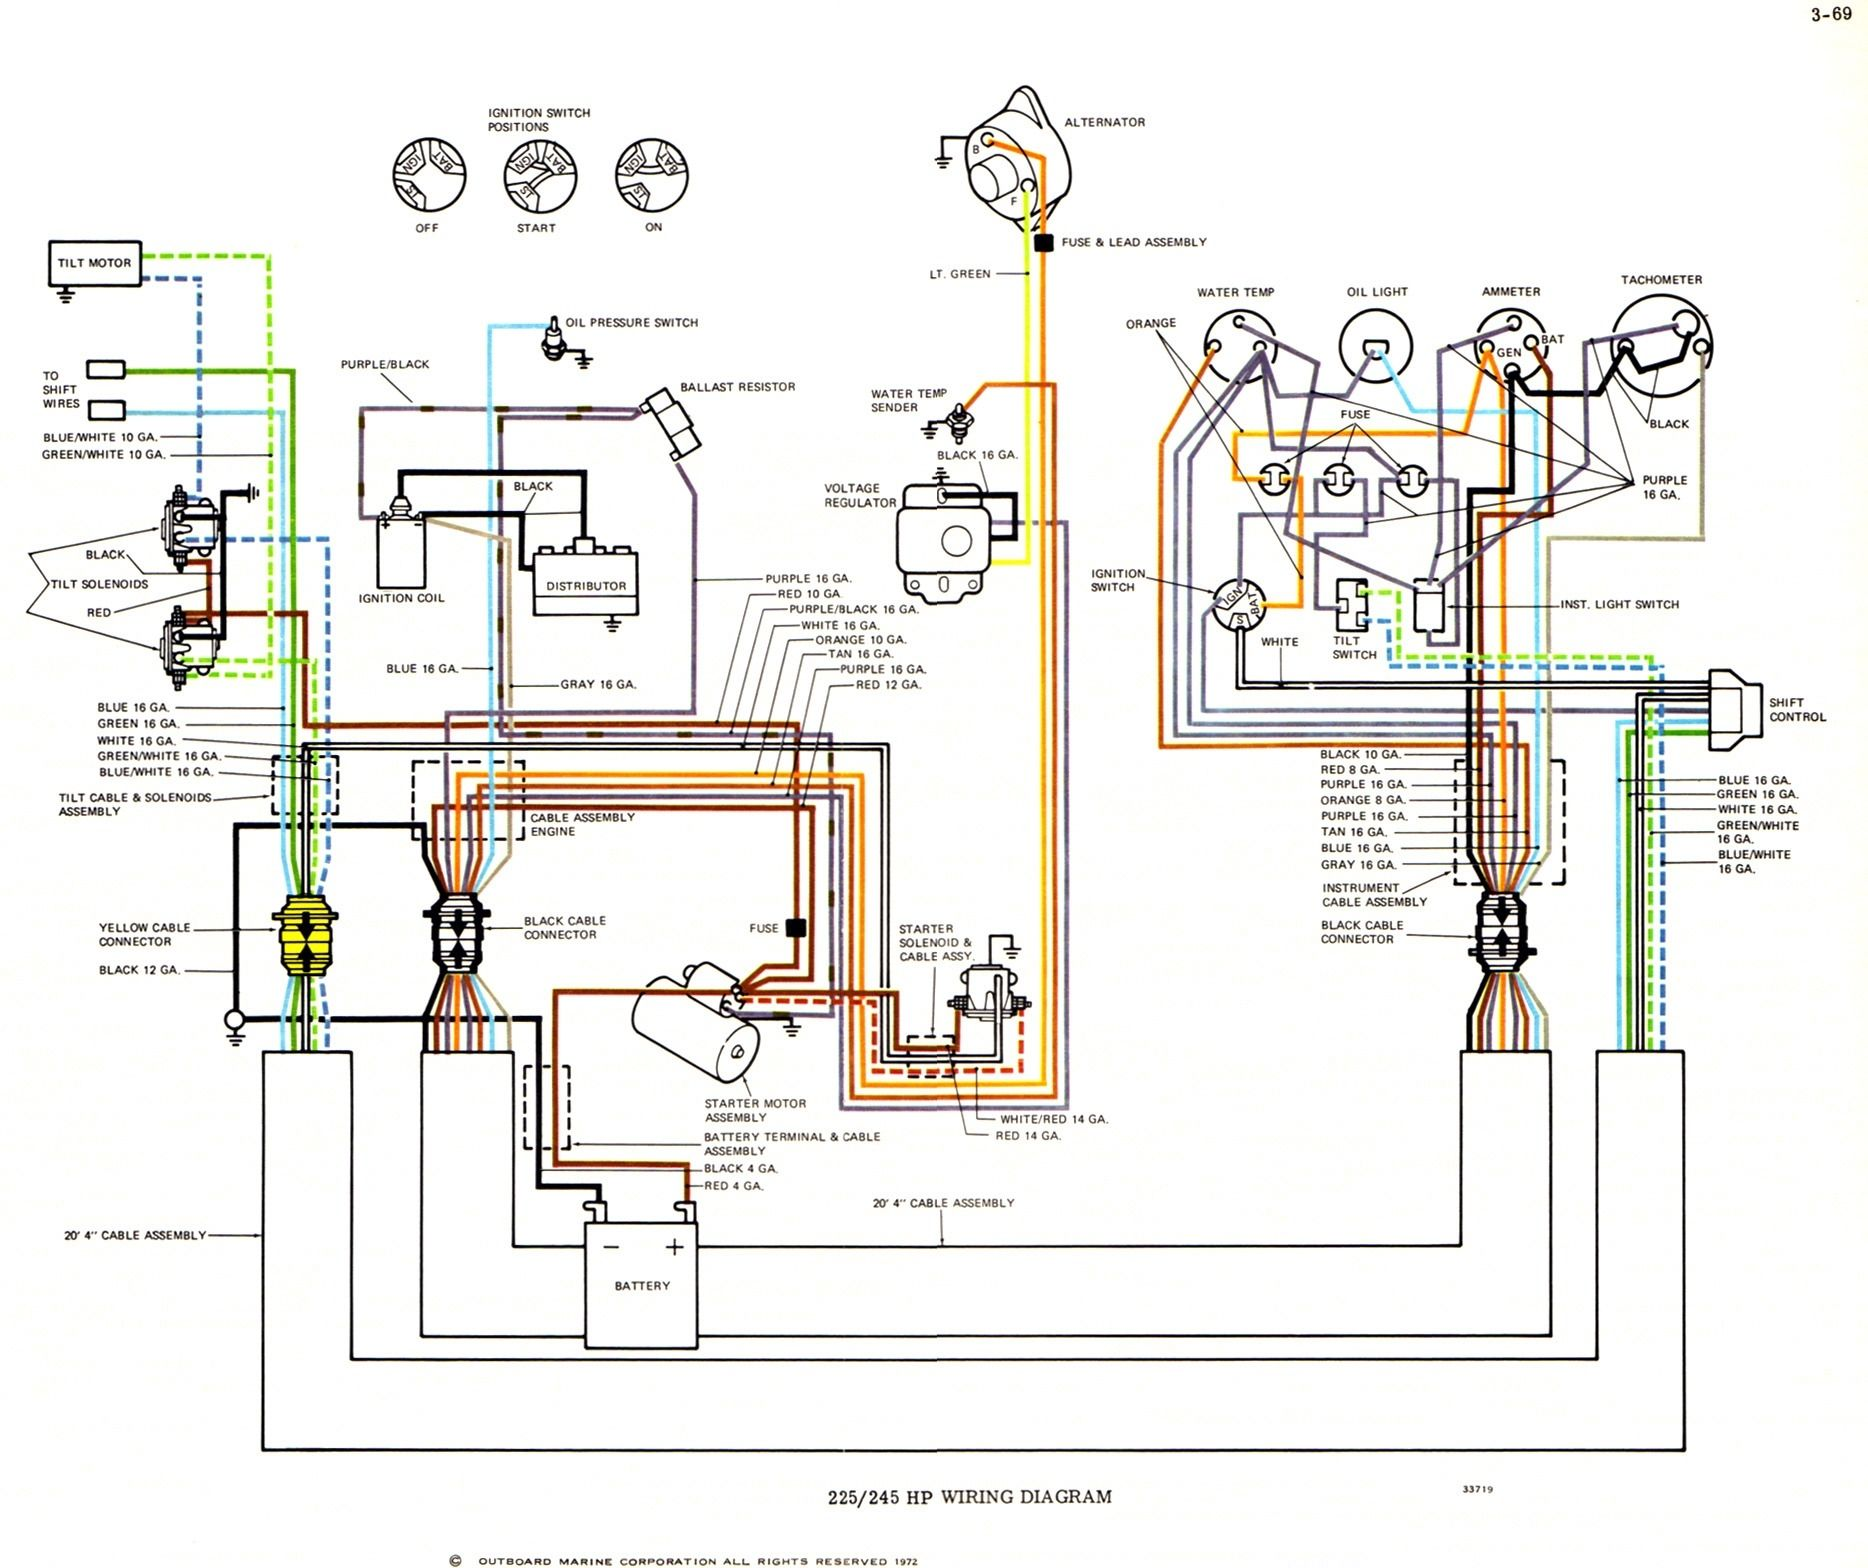 hight resolution of jet boat fuse box location wiring diagram jet boat fuse box